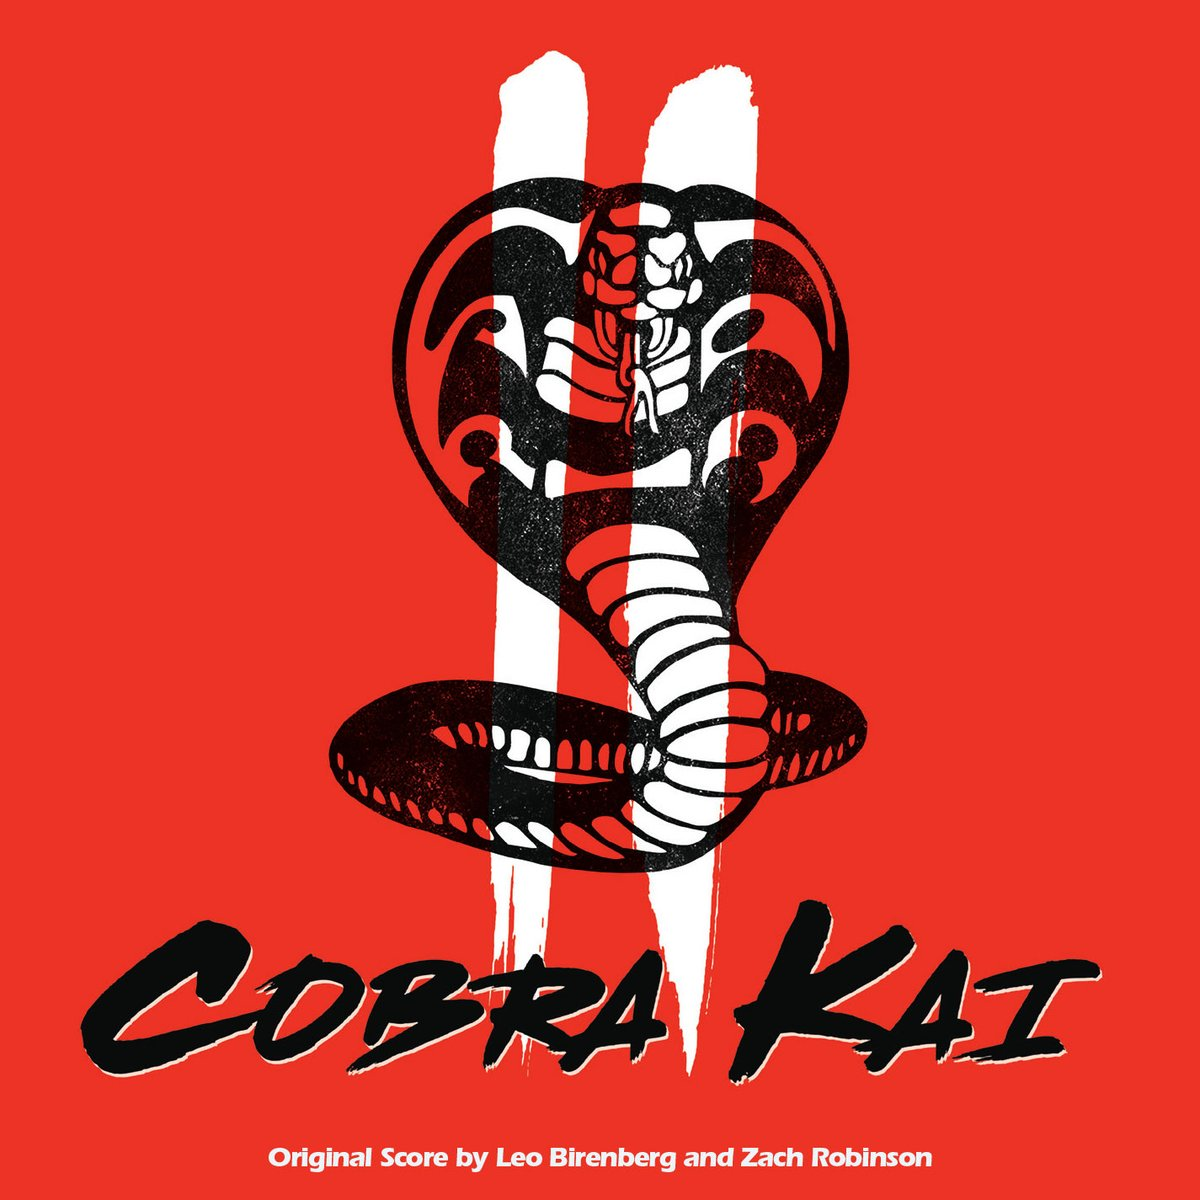 Pre-order now at  ! @CobraKaiSeries S2 and S 3 soundtrack releases by @zachrobinson & @leobirenberg , both w/ CD exclusive bonus tracks! First pre-orders get composer-autographed CD booklets! STARTS SHIPPING JAN 19th! @ralphmacchio @WilliamZabka @MartinKove